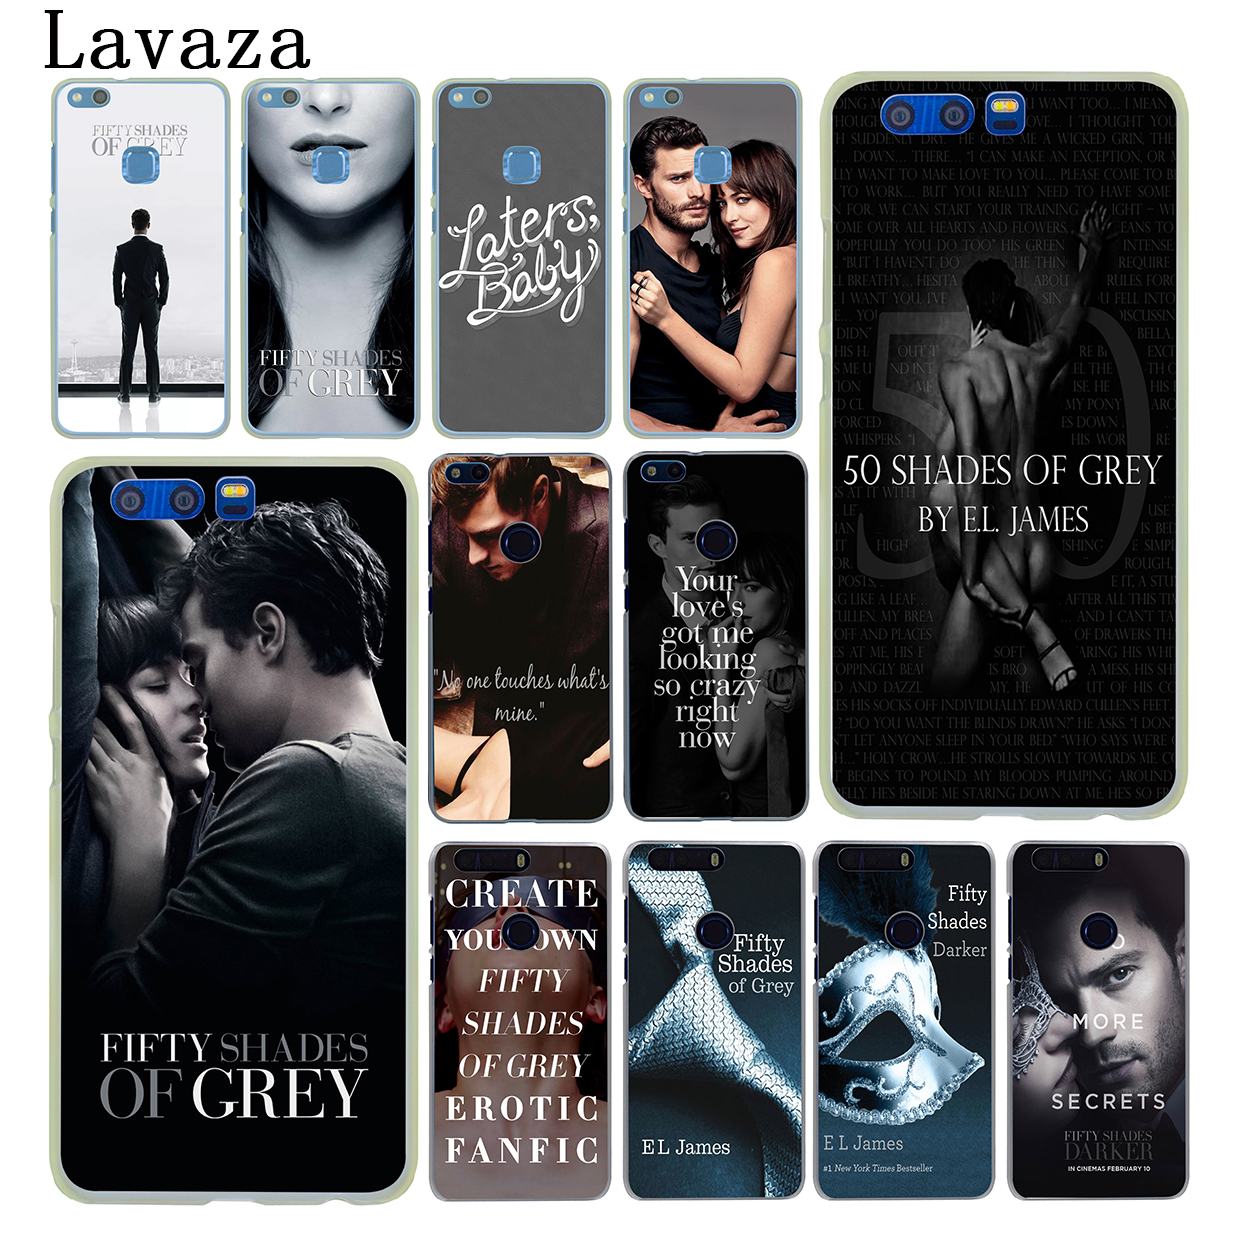 Lavaza Fifty Shades of Grey darker Hard Cover Case for Huawei Y5 Y3 Y6 II Y7 2017 2018 Nova 2 Plus 2S 2i Honor 10 8 9 Lite 7 7X